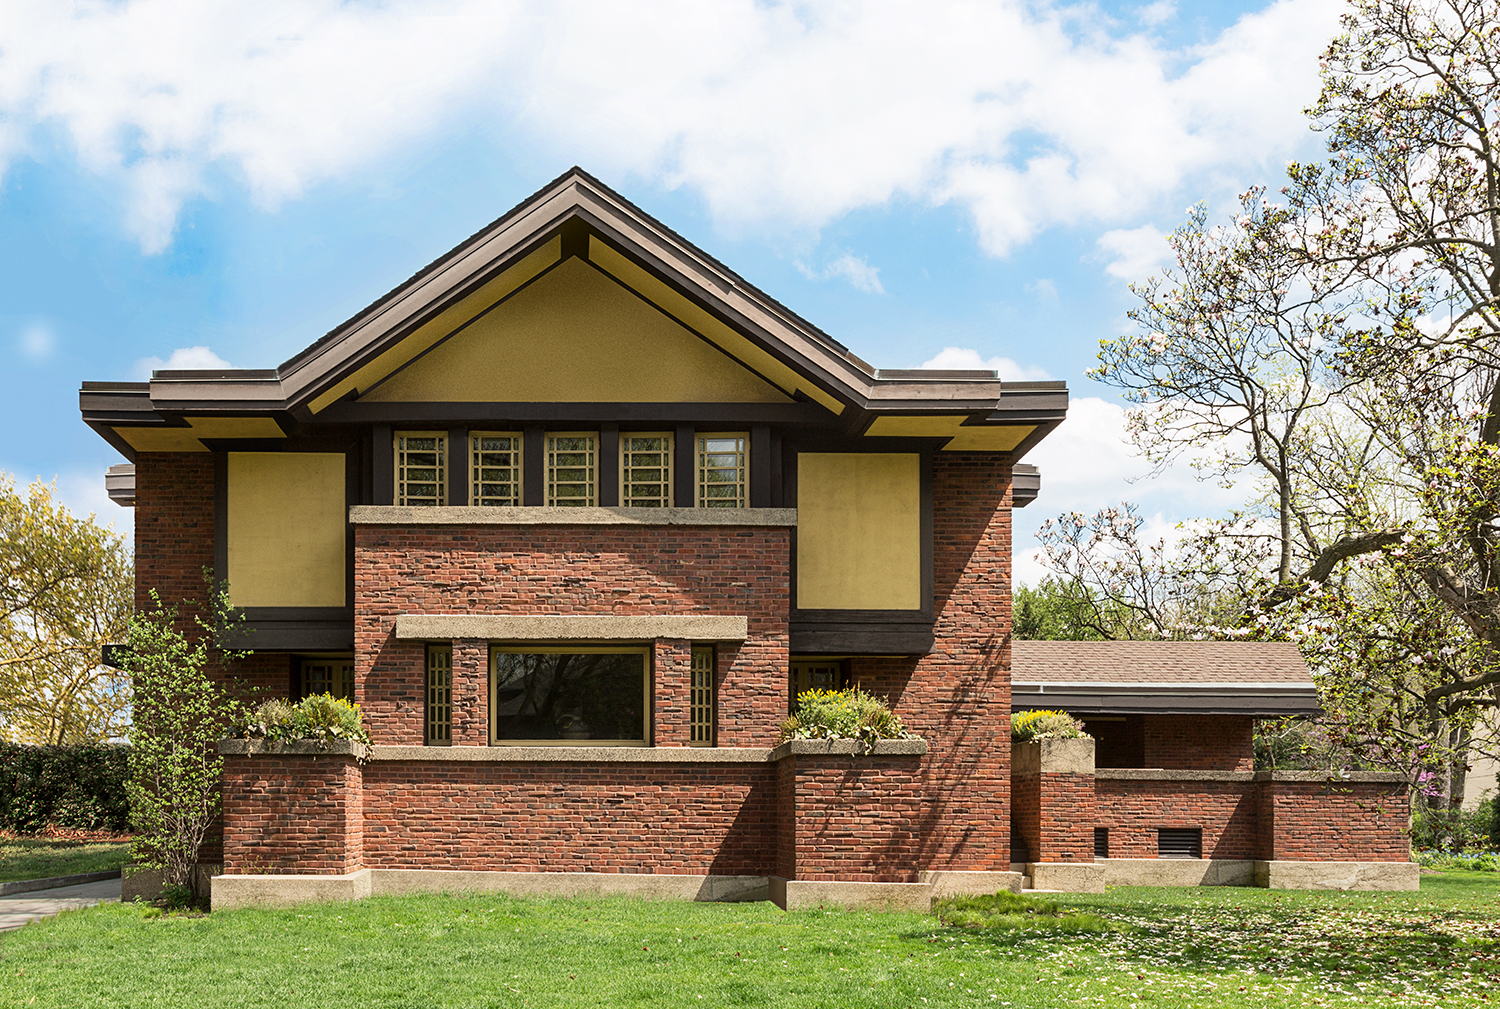 Beachy House / Oak Park IL / Frank Lloyd Wright